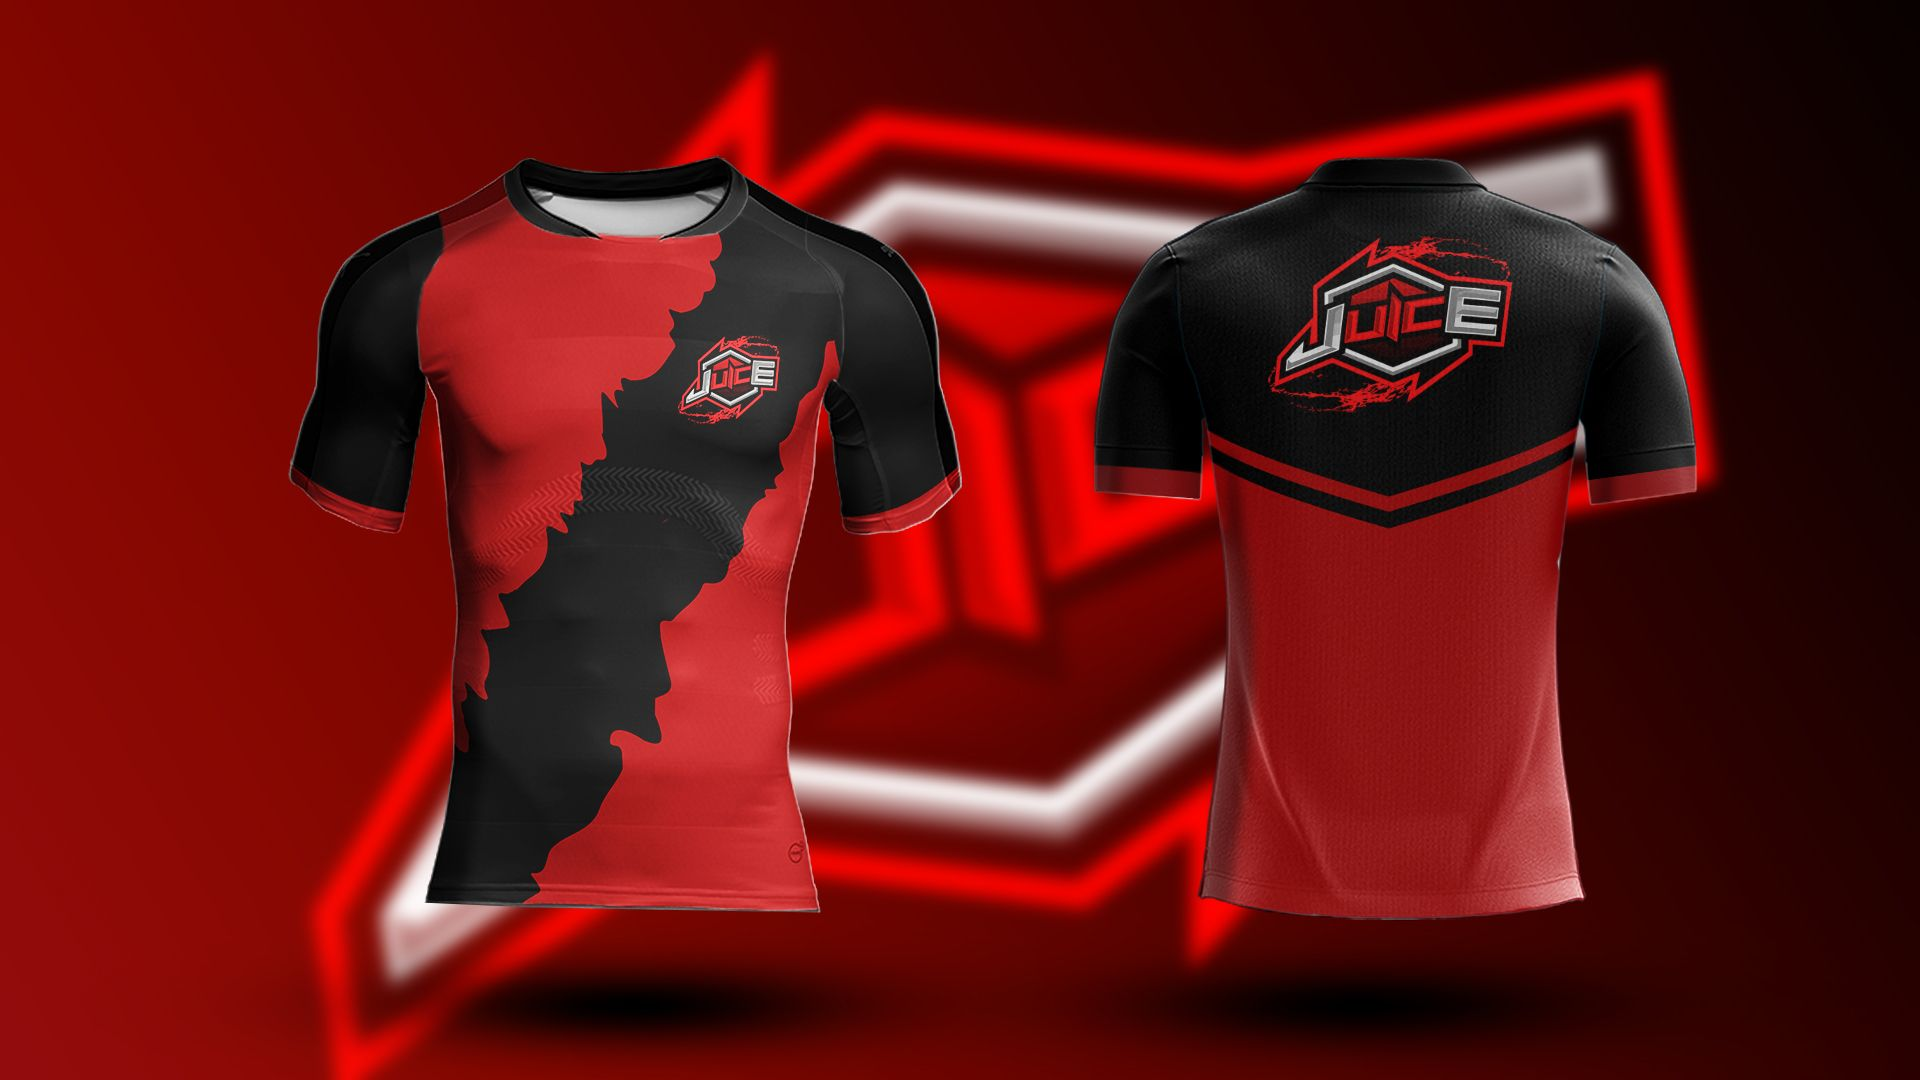 I Will Design Jersey For Esports Soccer Etc In 24 Hours Sport T Shirt Sleeves Clothing Black Shirt